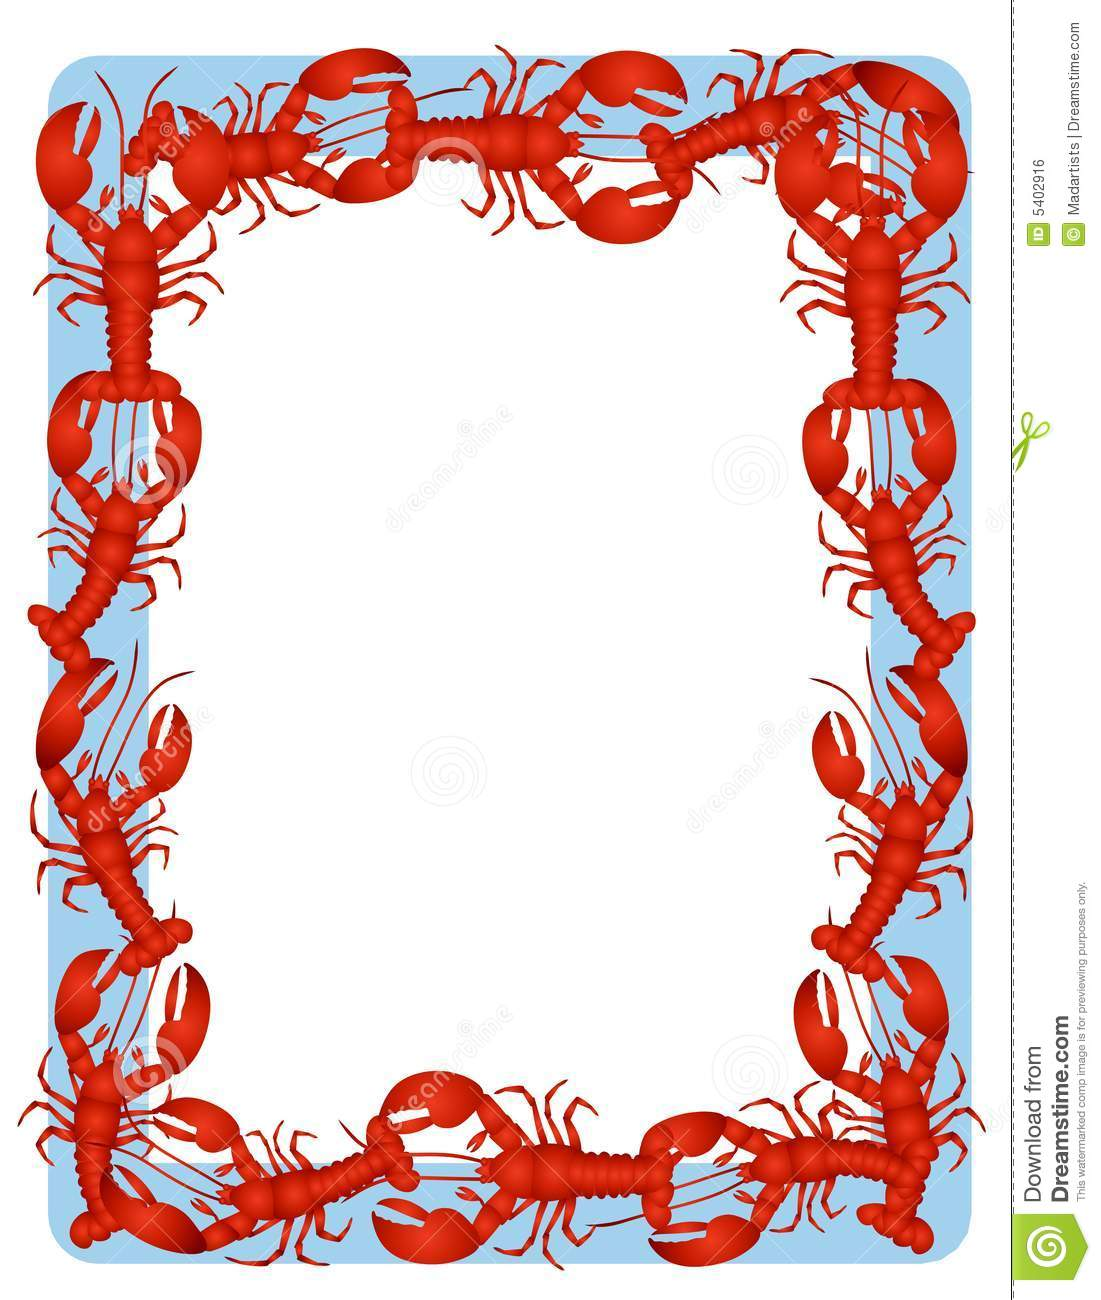 Lobster Dinner Clipart | Clipart Panda - Free Clipart Images